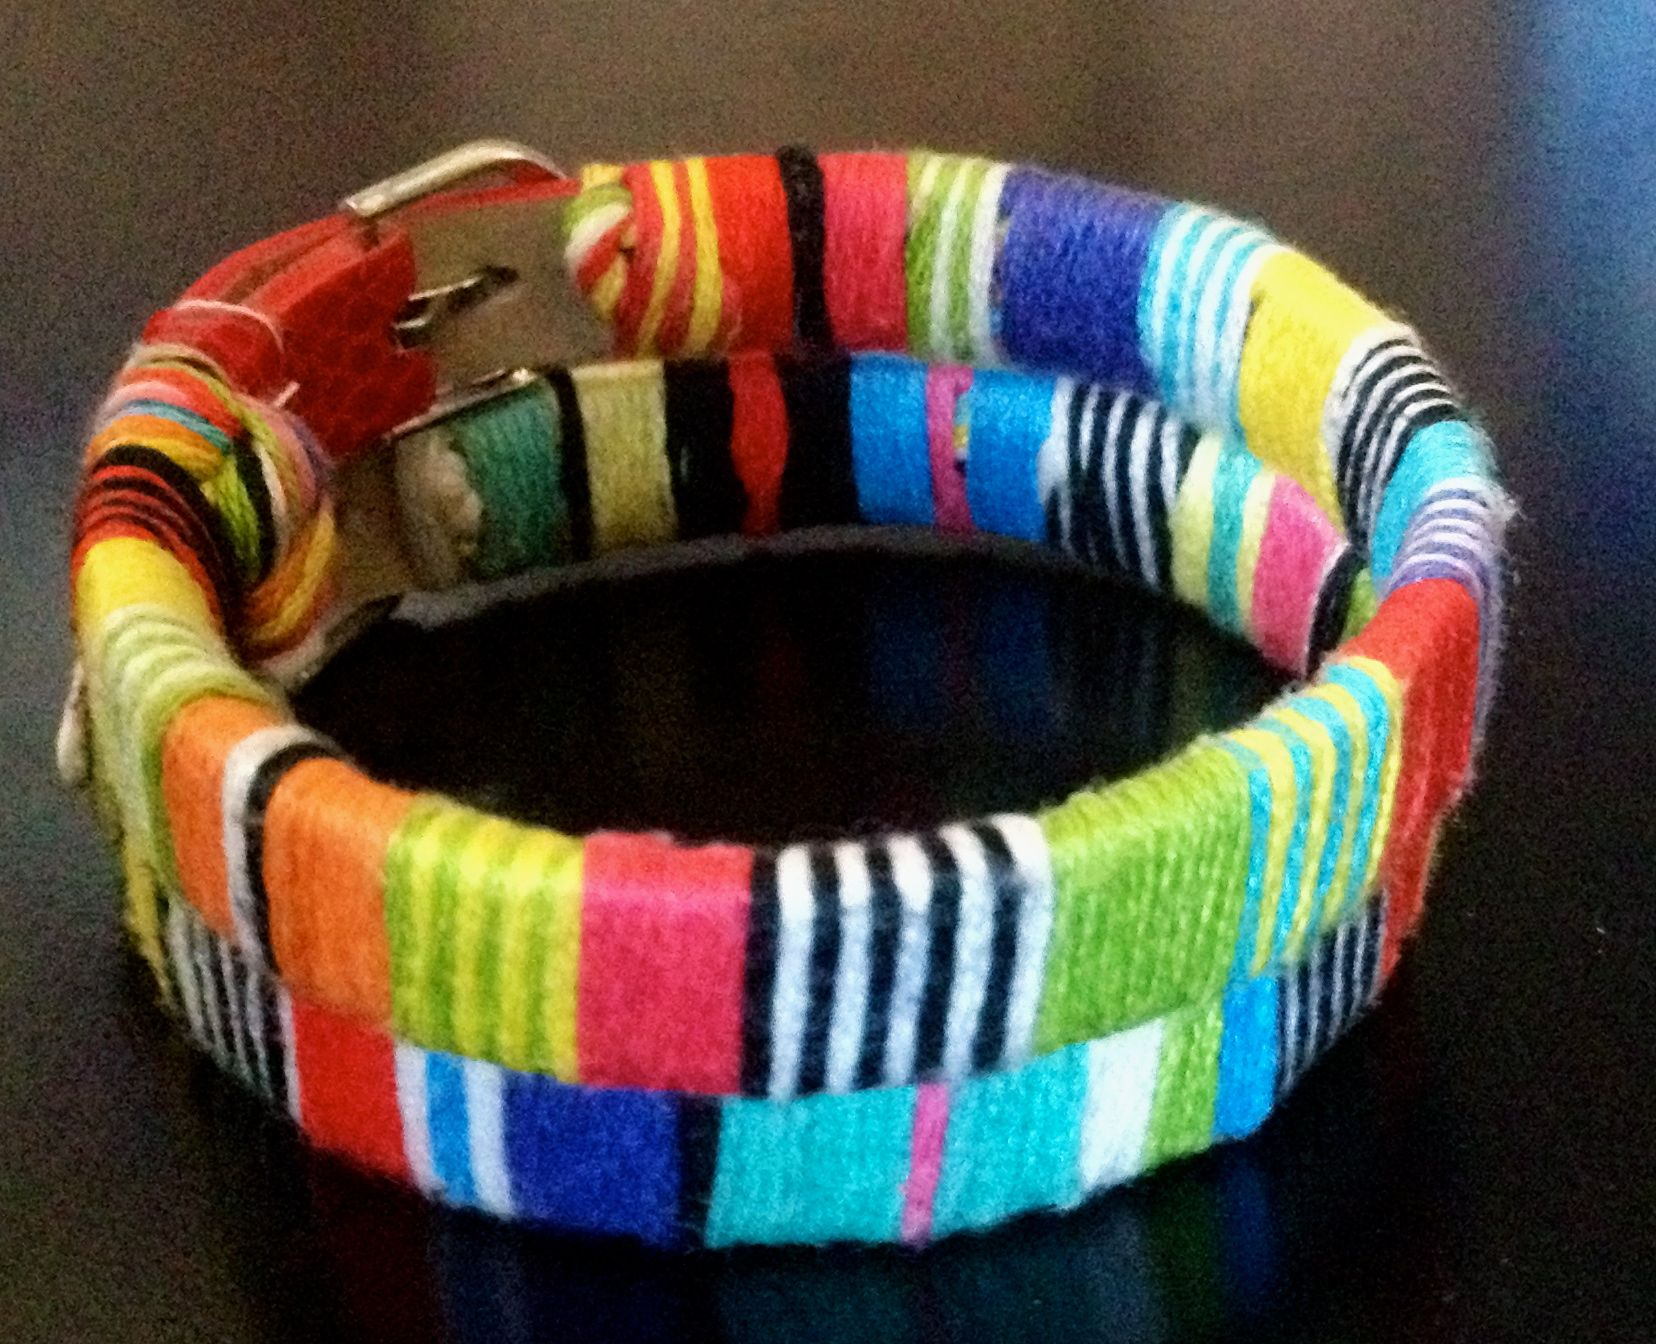 Great gifts or projects for the Holidays, winter snow days, birthday parties, after school programs or simply an affordable high quality art project with a gorgeous hand made bracelet !